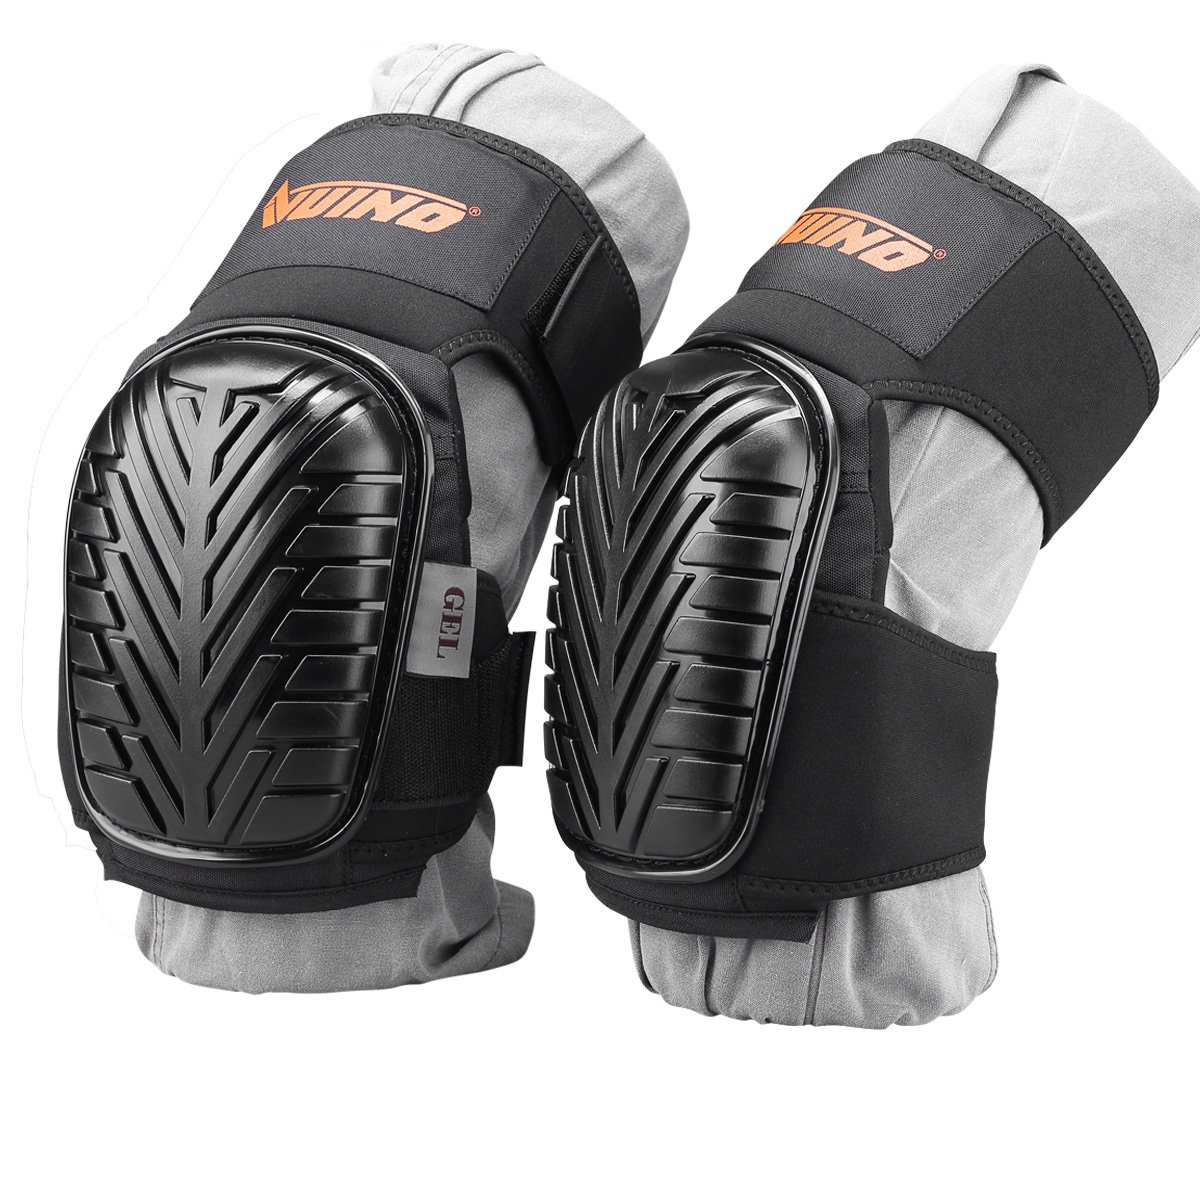 VUINO Professional Heavy Duty EVA Foam Padding Knee Pads with Comfortable Gel Cushion and Adjustable Straps for Working, Gardning, Cleaning, Flooring, Tiling and Construction (Black) by Ningbo Xinweinuo Fanghuyongpin Co.,Ltd (Image #2)